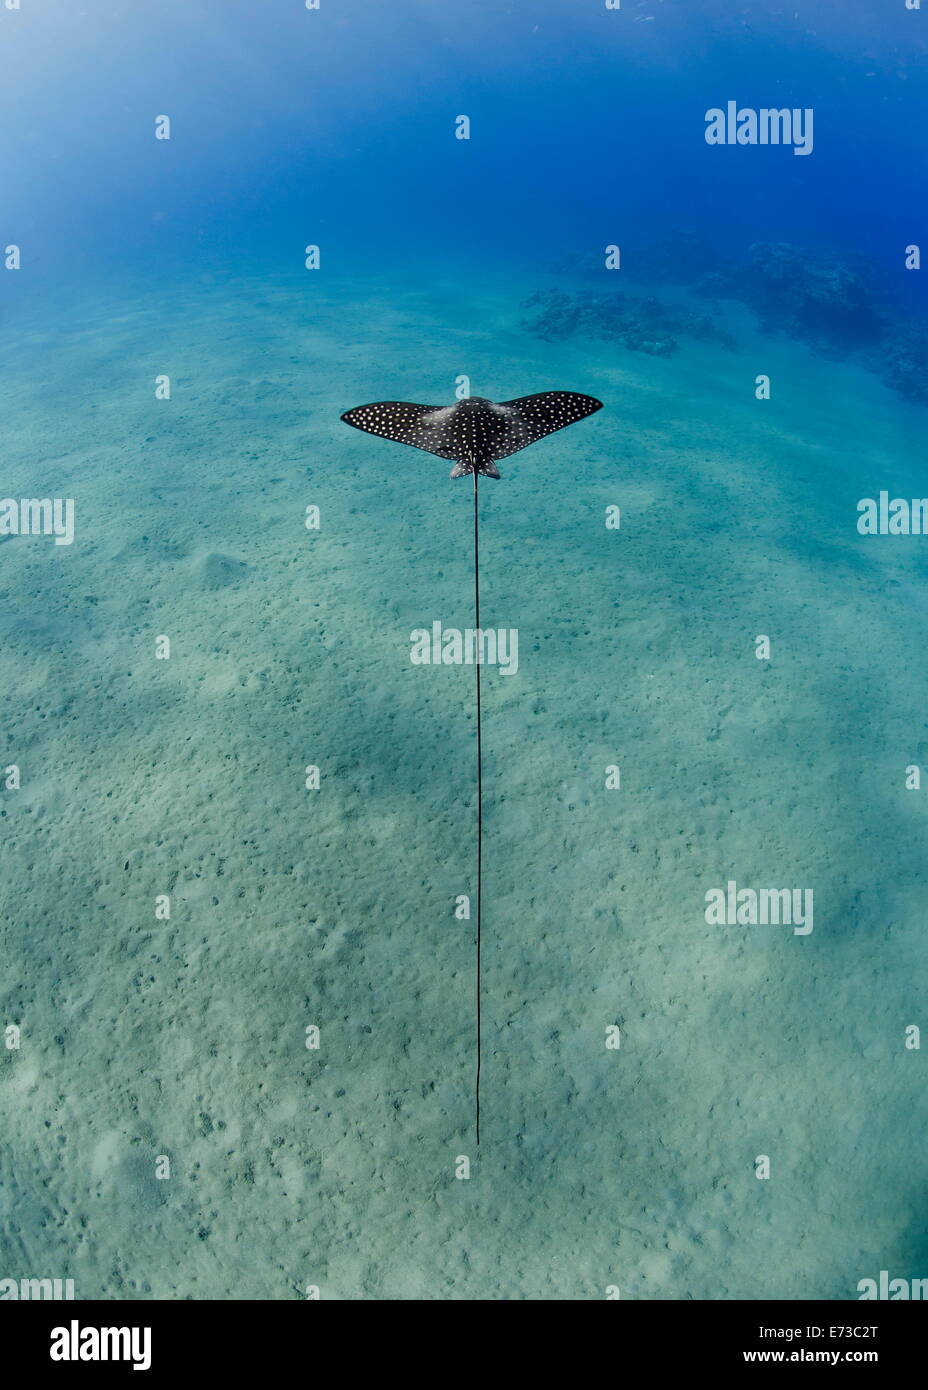 Spotted eagle ray coloring pages - Spotted Eagle Ray Juvenile Over Sandy Ocean Floor From Above Naama Bay Sharm